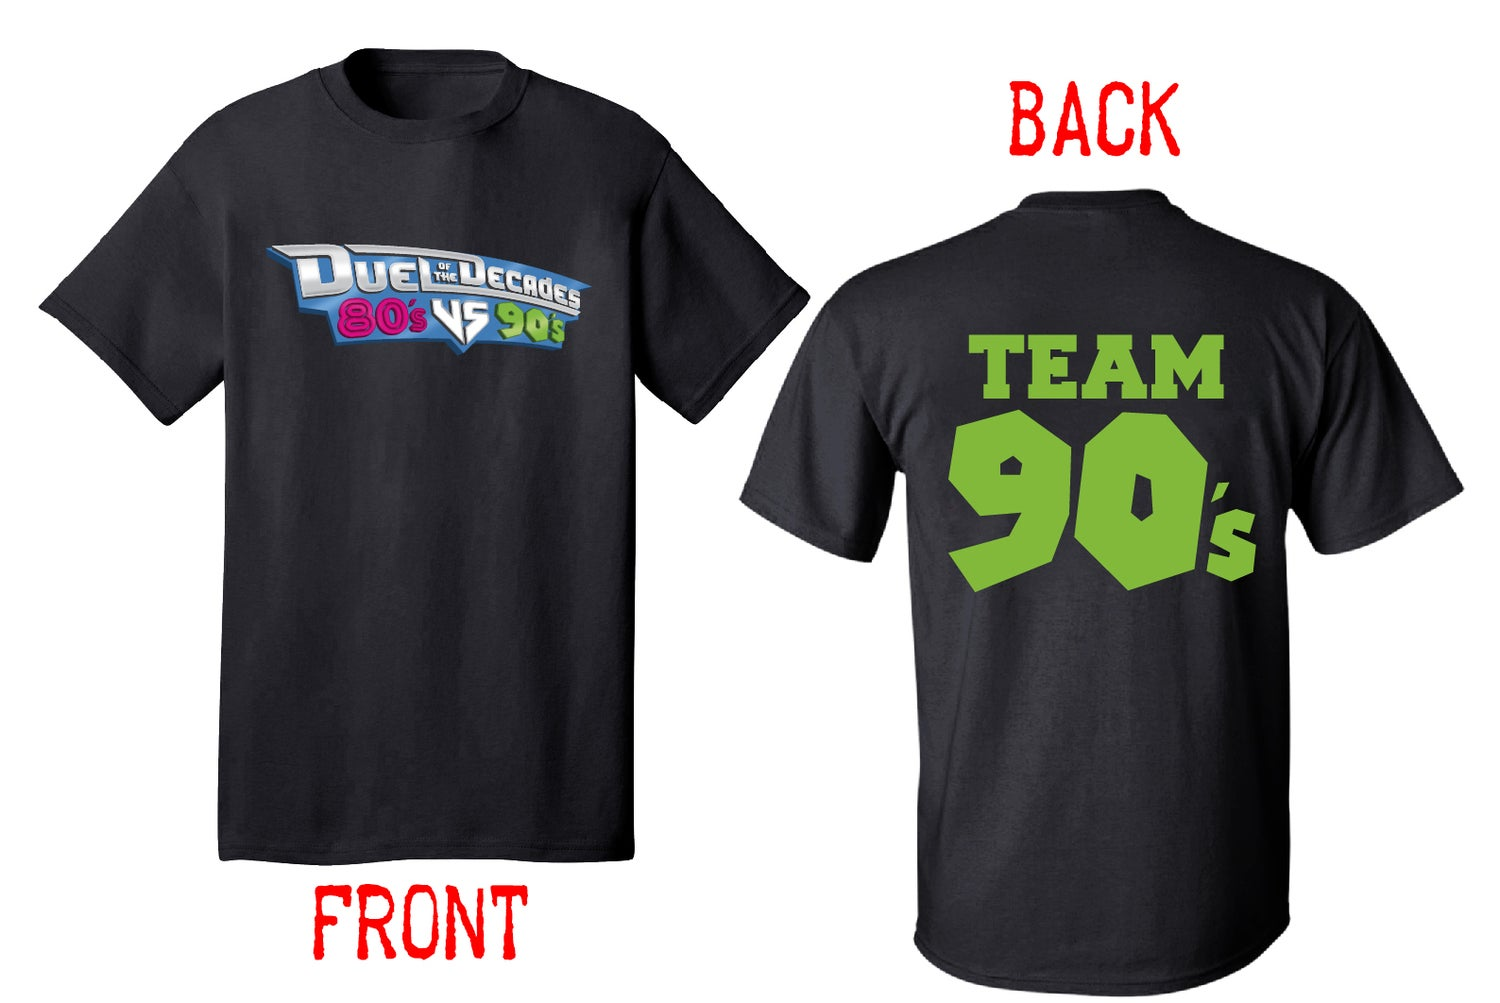 Image of Duel of the Decades (Team 90's) T-shirt